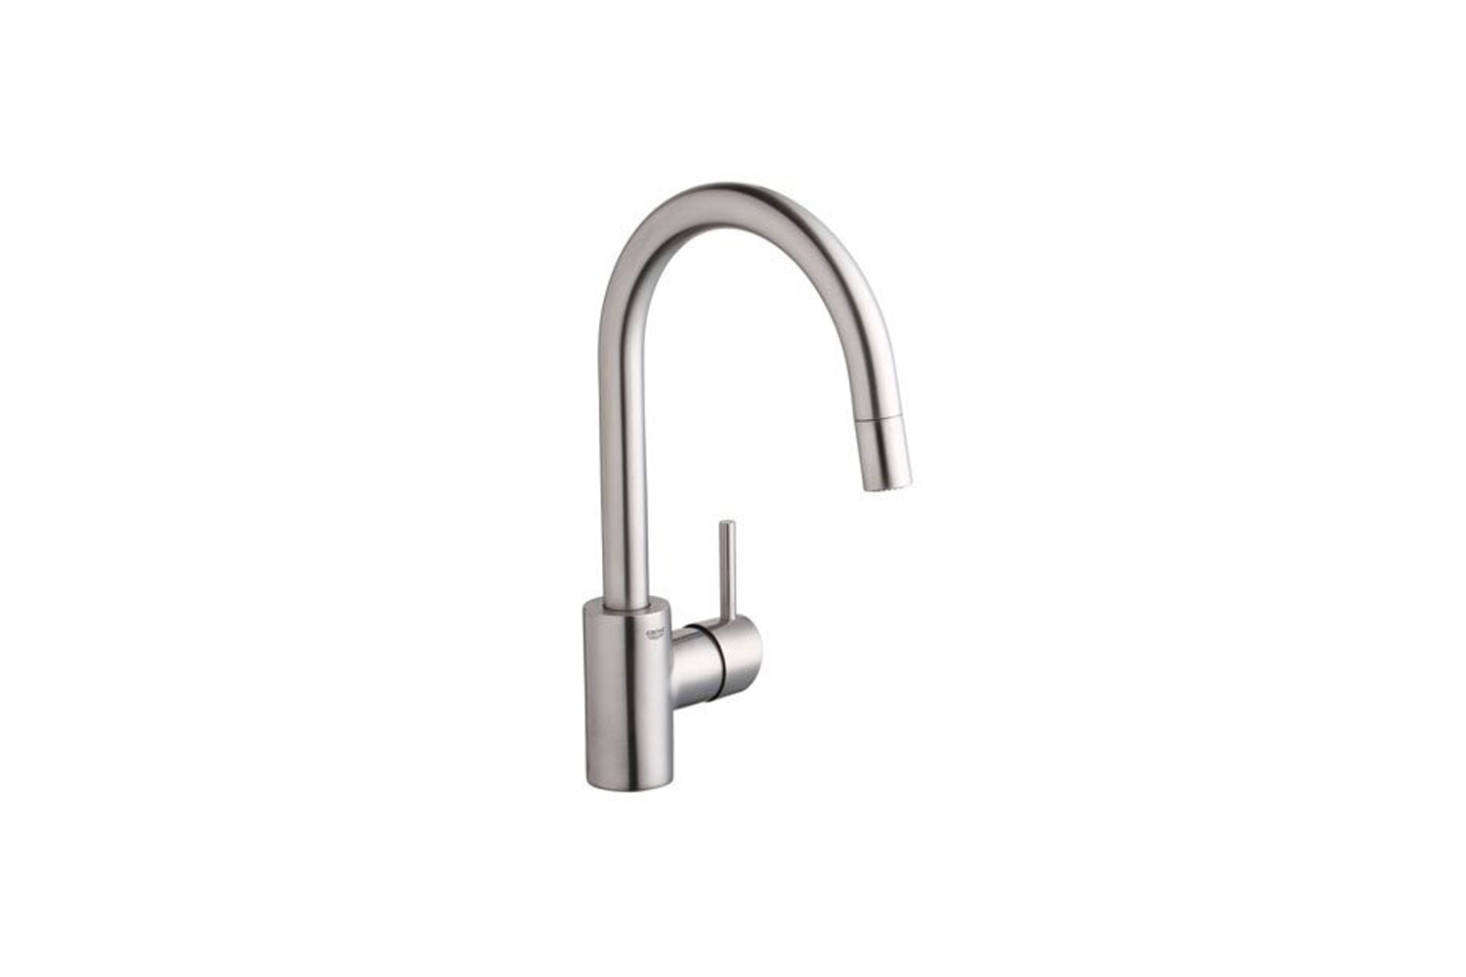 The Grohe Concetto Single-Handle Pull-Down Spray Kitchen Faucet (365DCsrc=